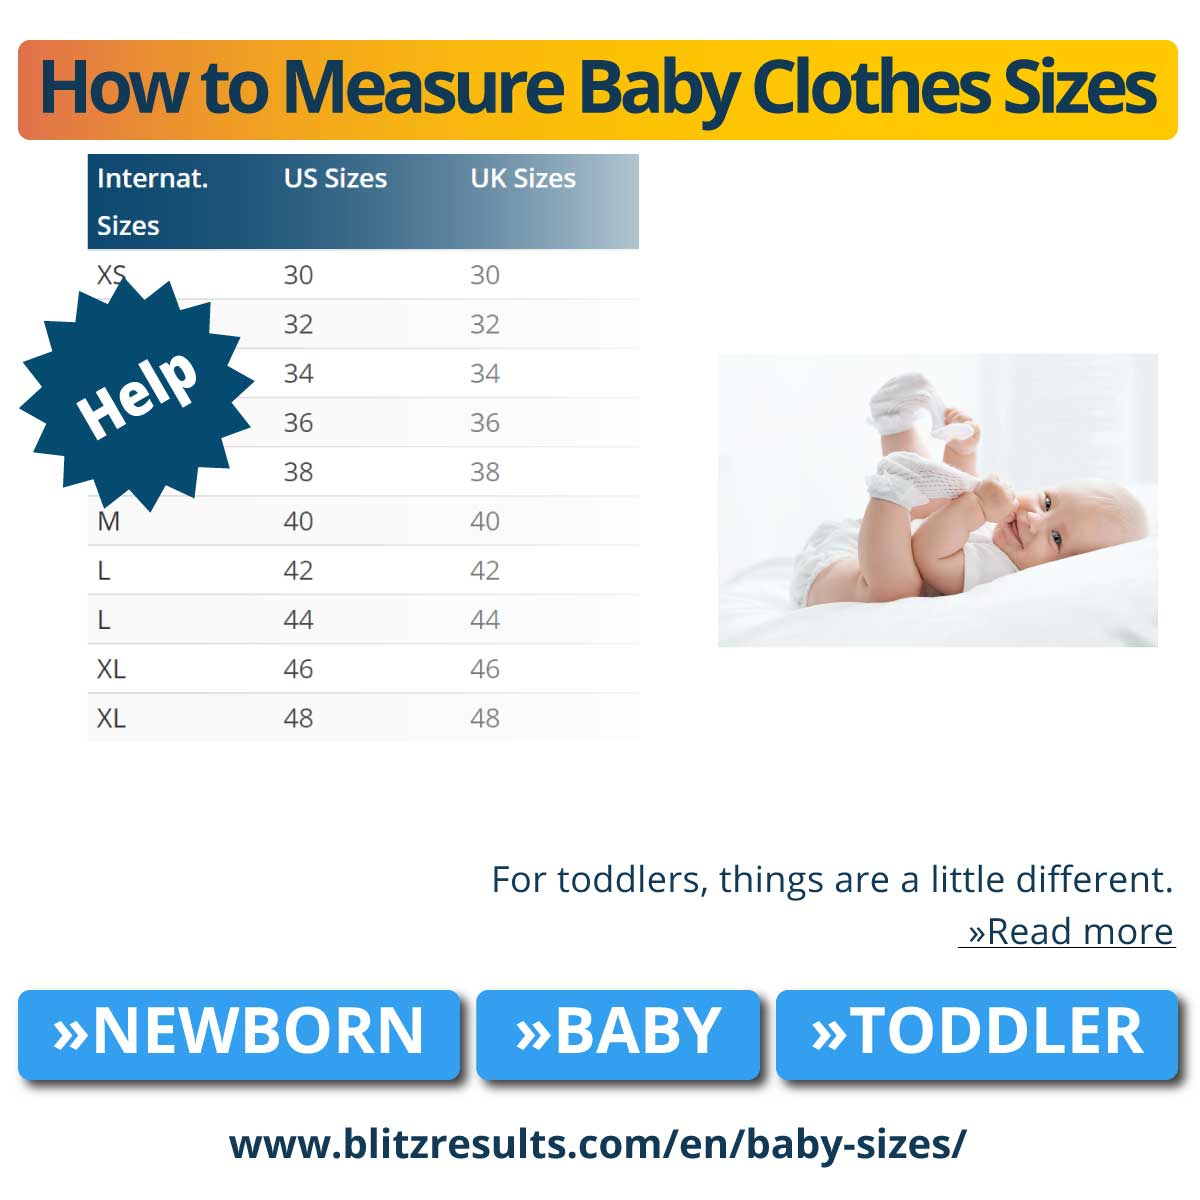 How to Measure Baby Clothes Sizes